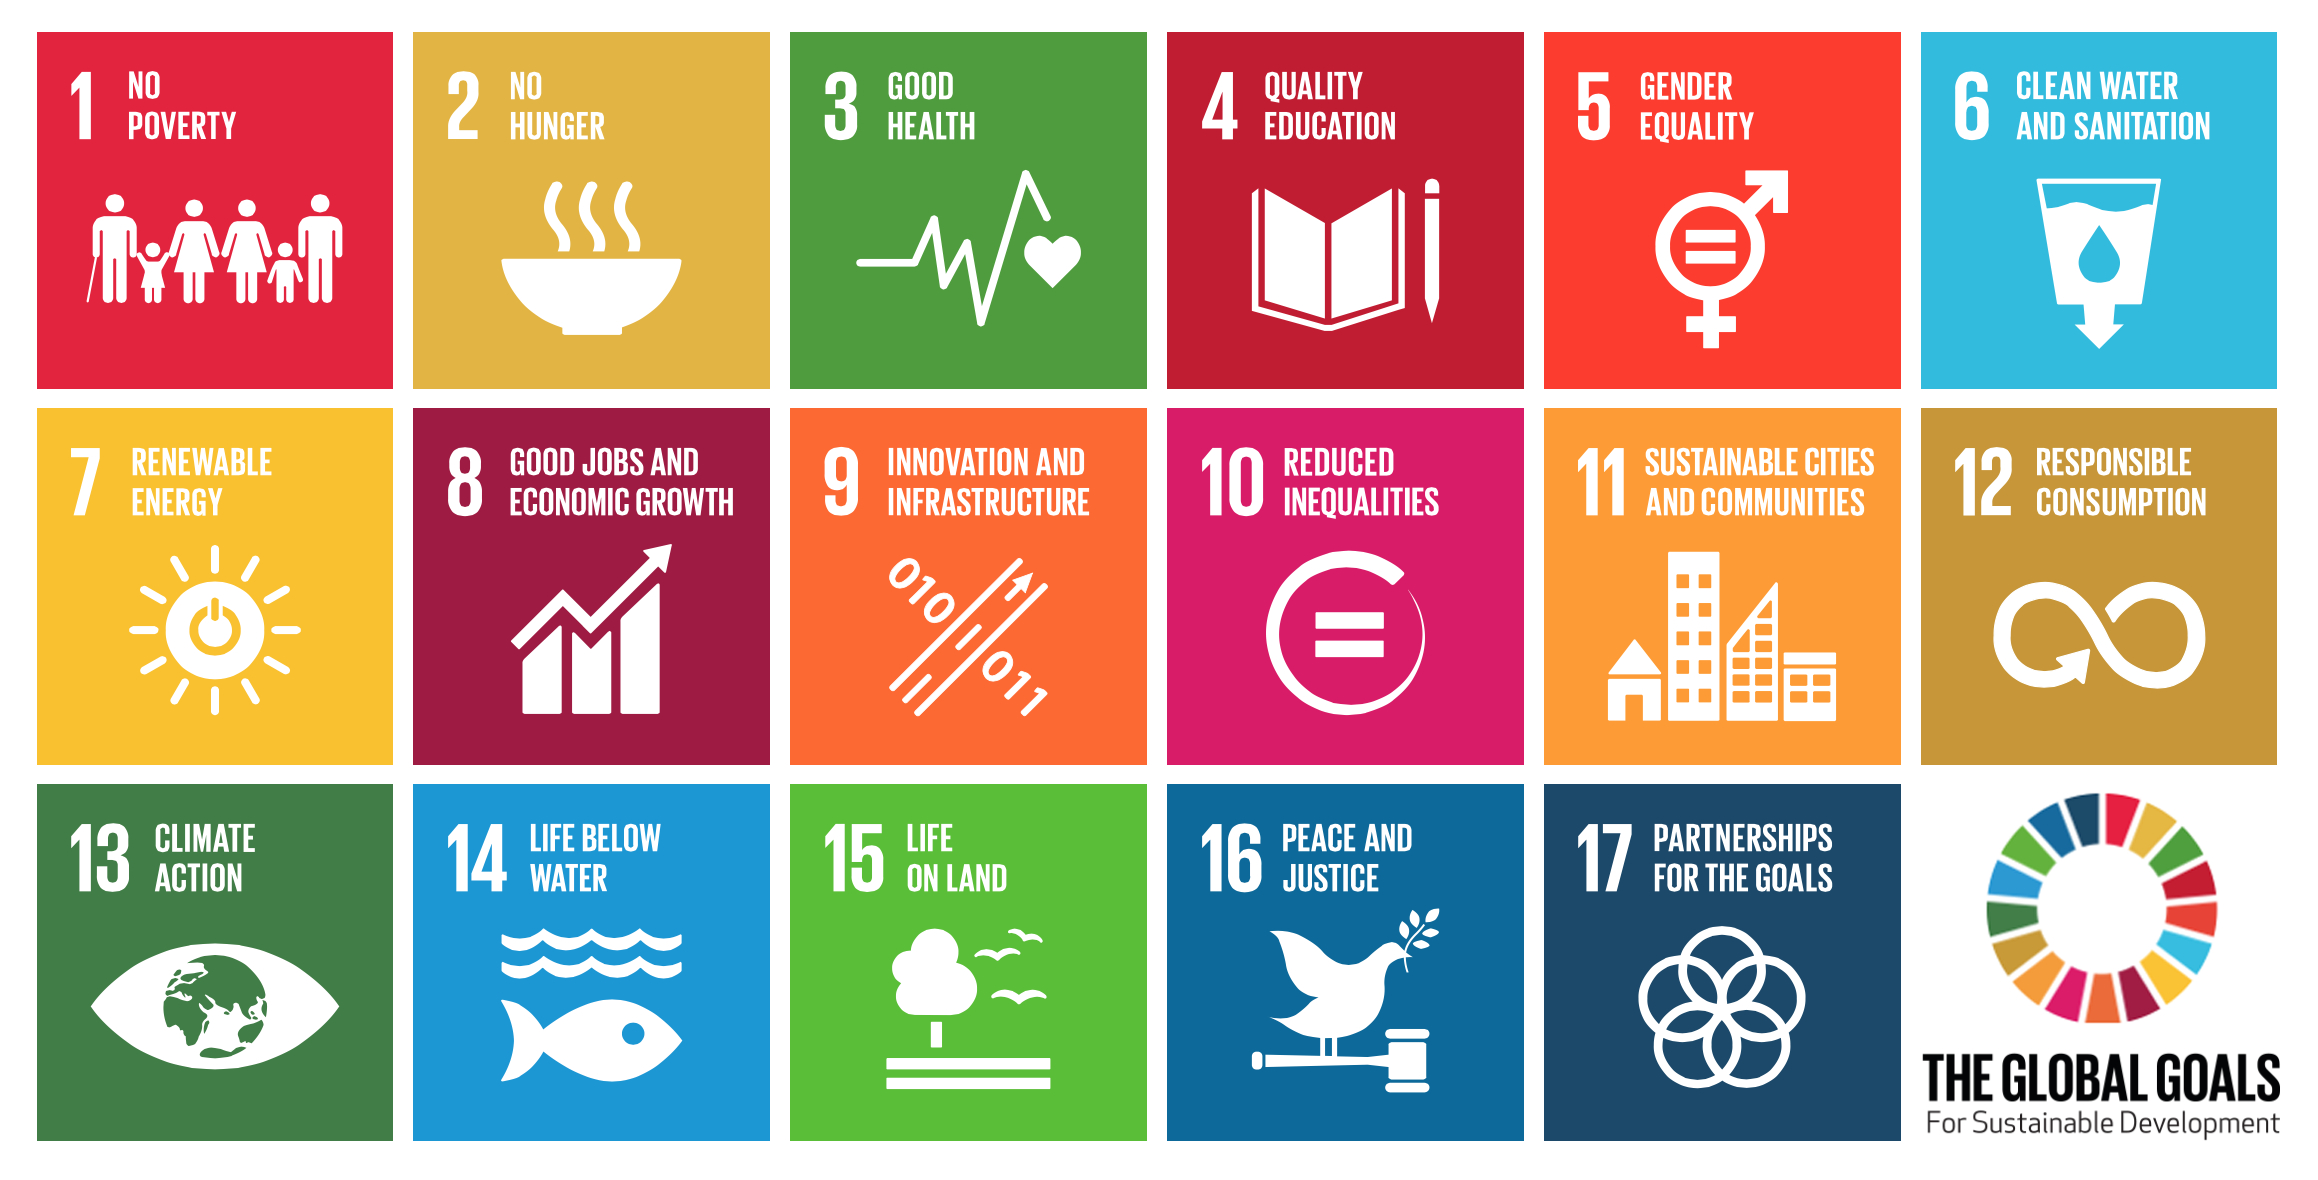 http://www.globalgoals.org/